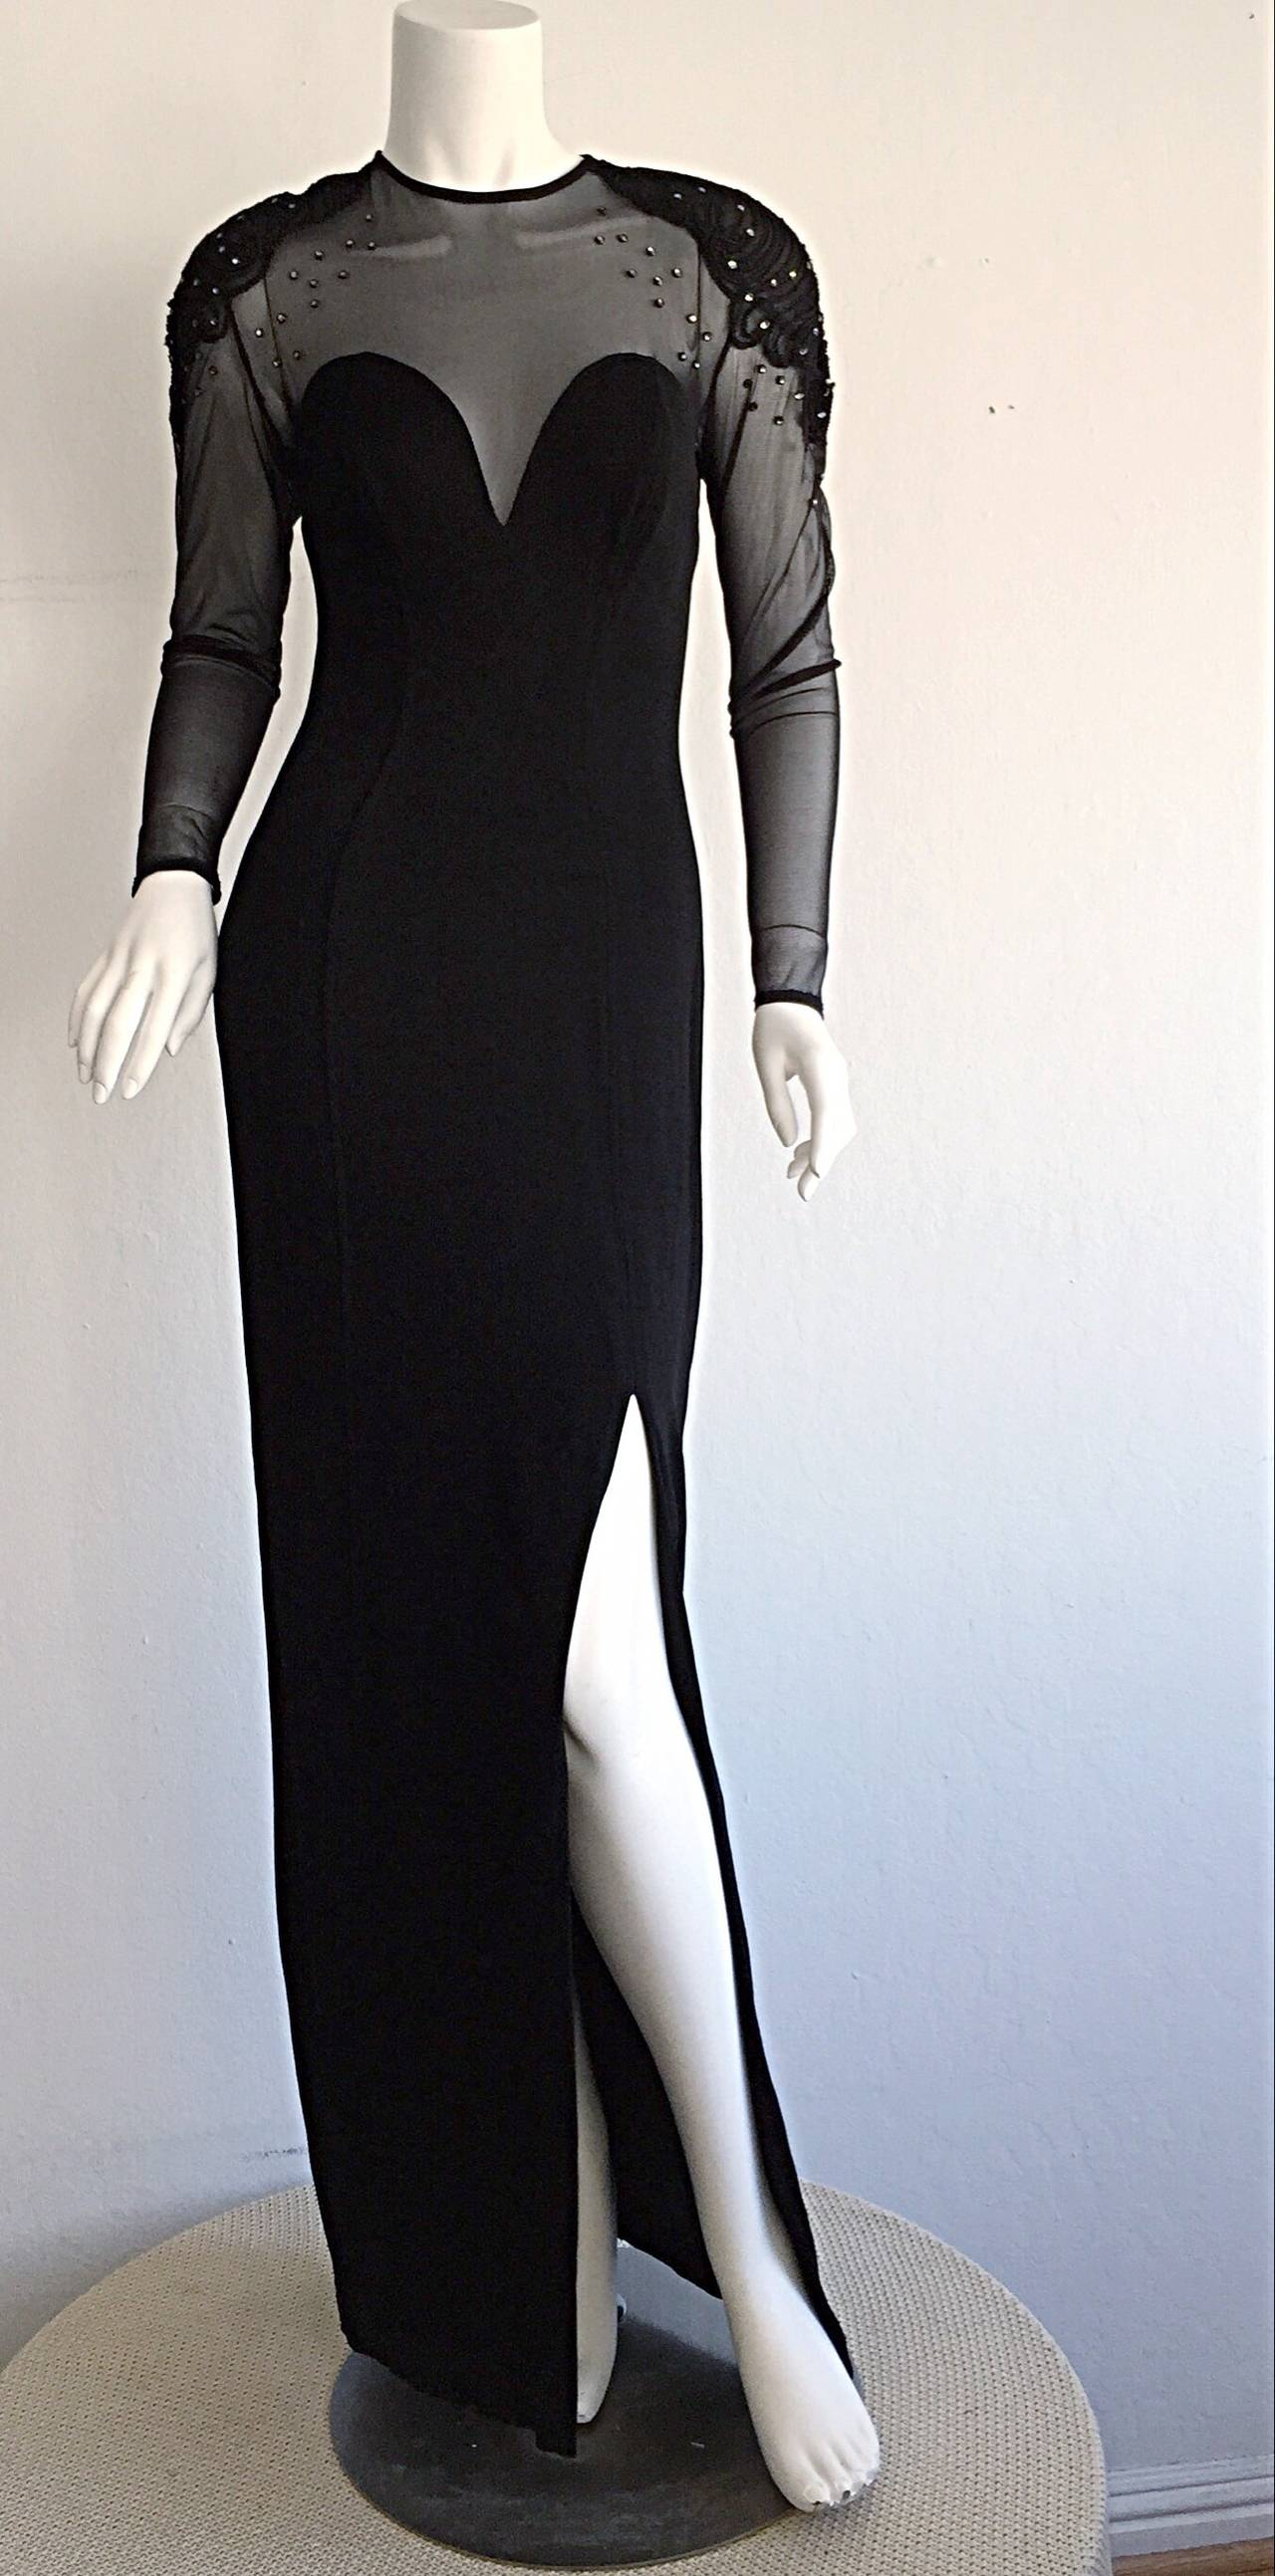 Now this is a sexy dress! 1990s Tadashi Sohji bodycon gown! Features nylon mesh at bust and back. Perfect sweetheart effect, that displays just the right amount of cleavage. Intricate woven detail at shoulders, encrusted with rhinestones. Sext slit